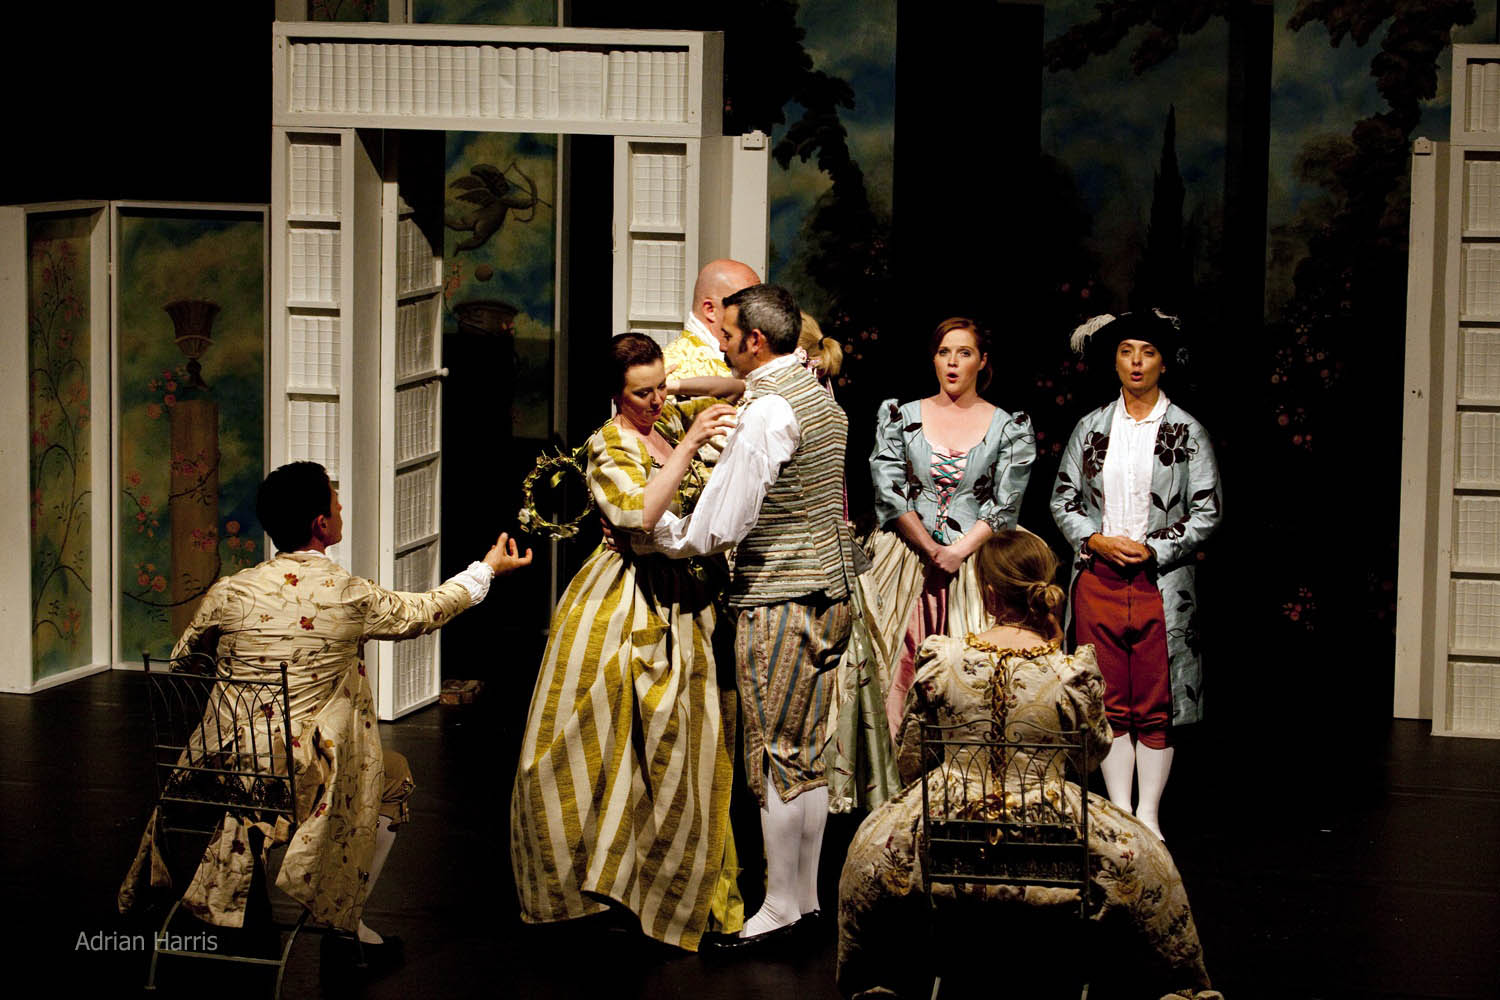 The Marriage of Figaro at Salisbury Playhouse, 2009